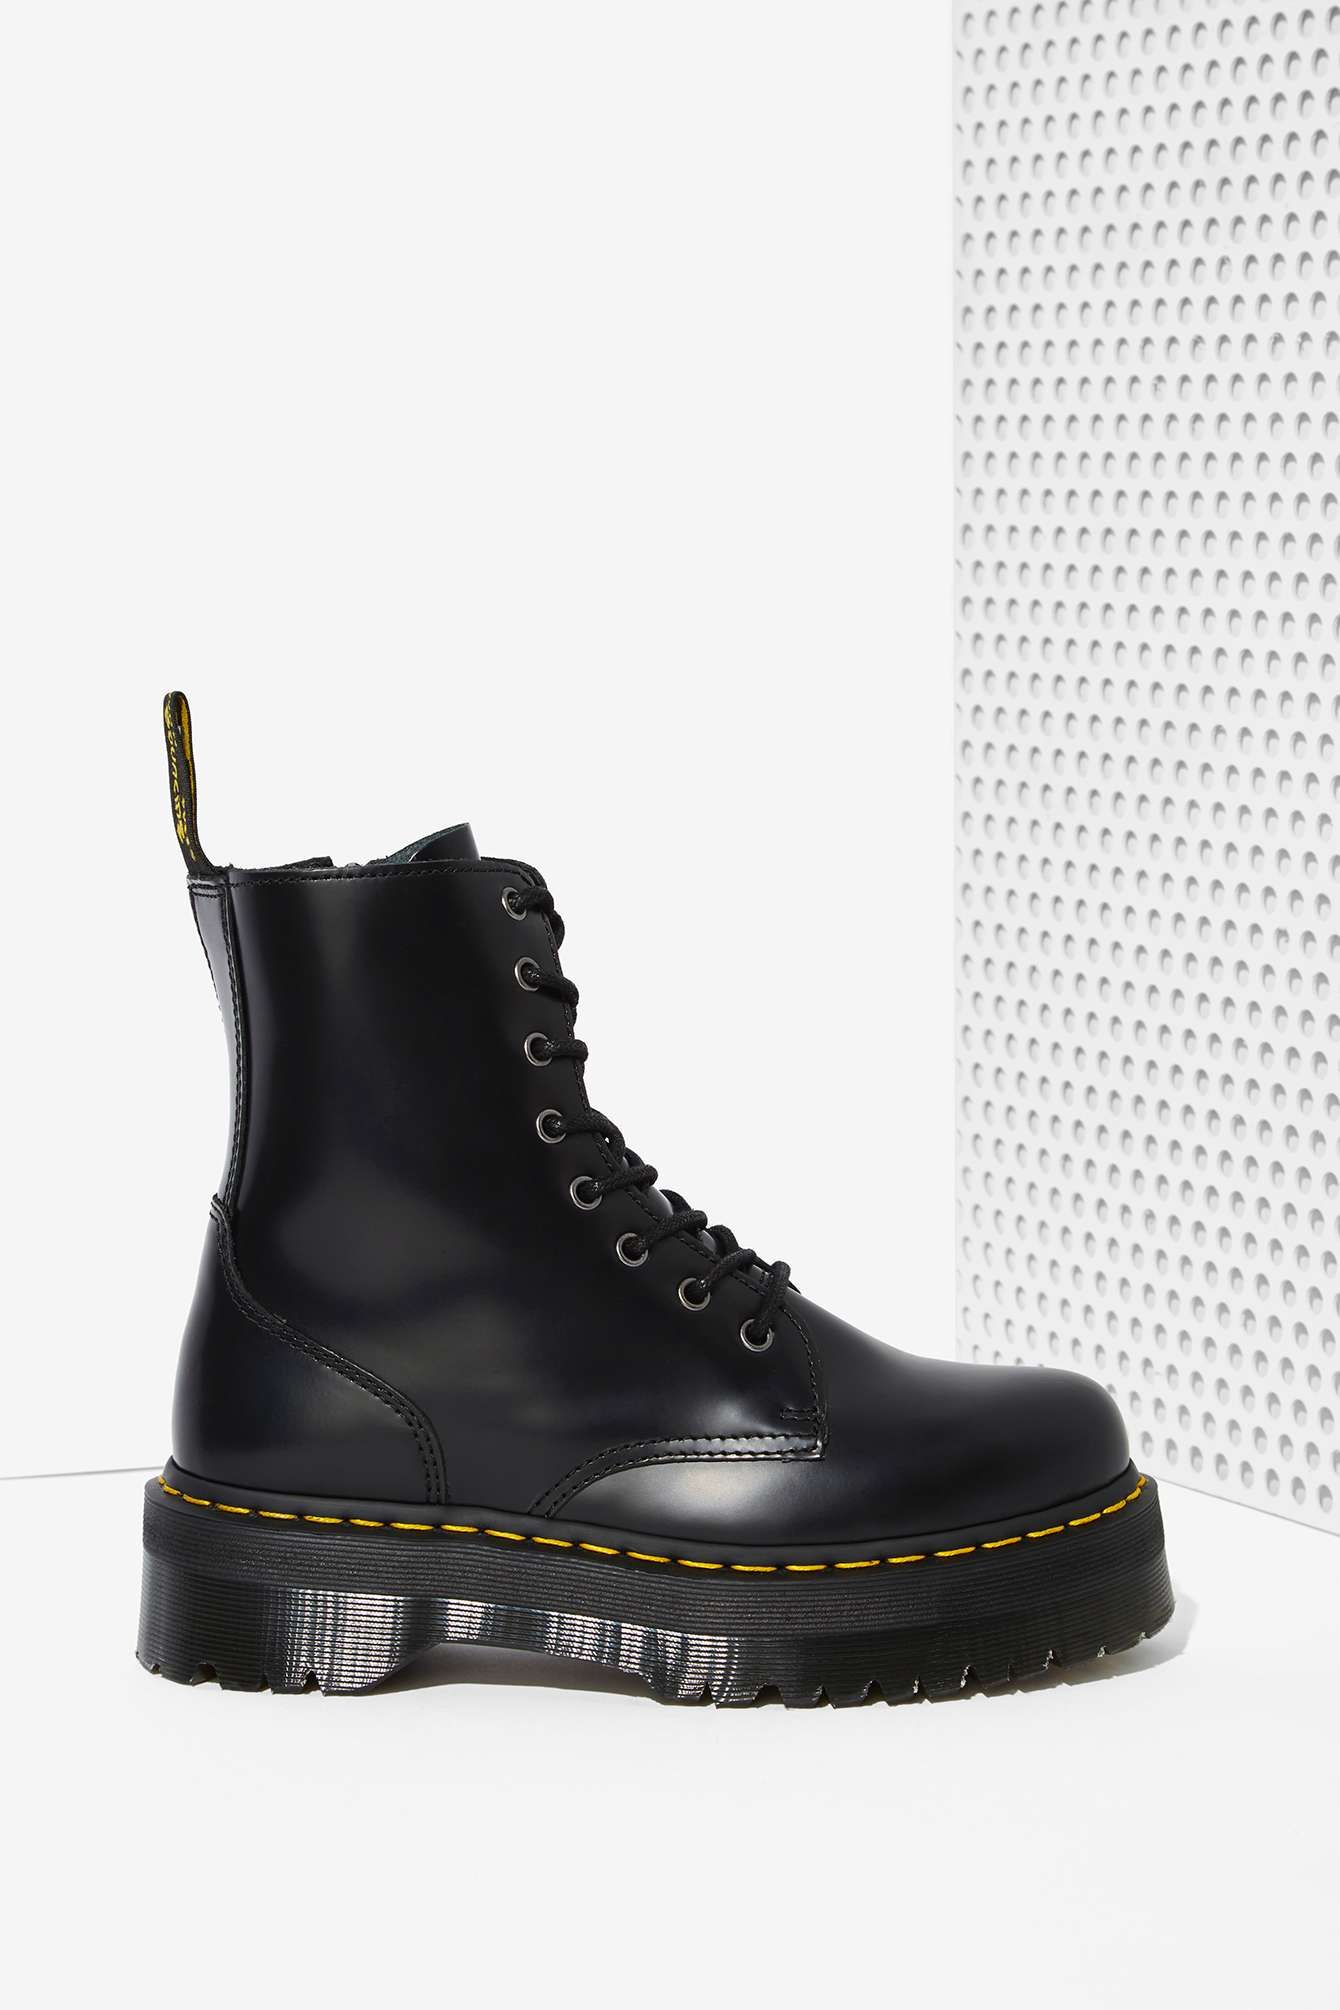 a62707d8569 Dr. Martens Jadon 8-Eye Leather Boot